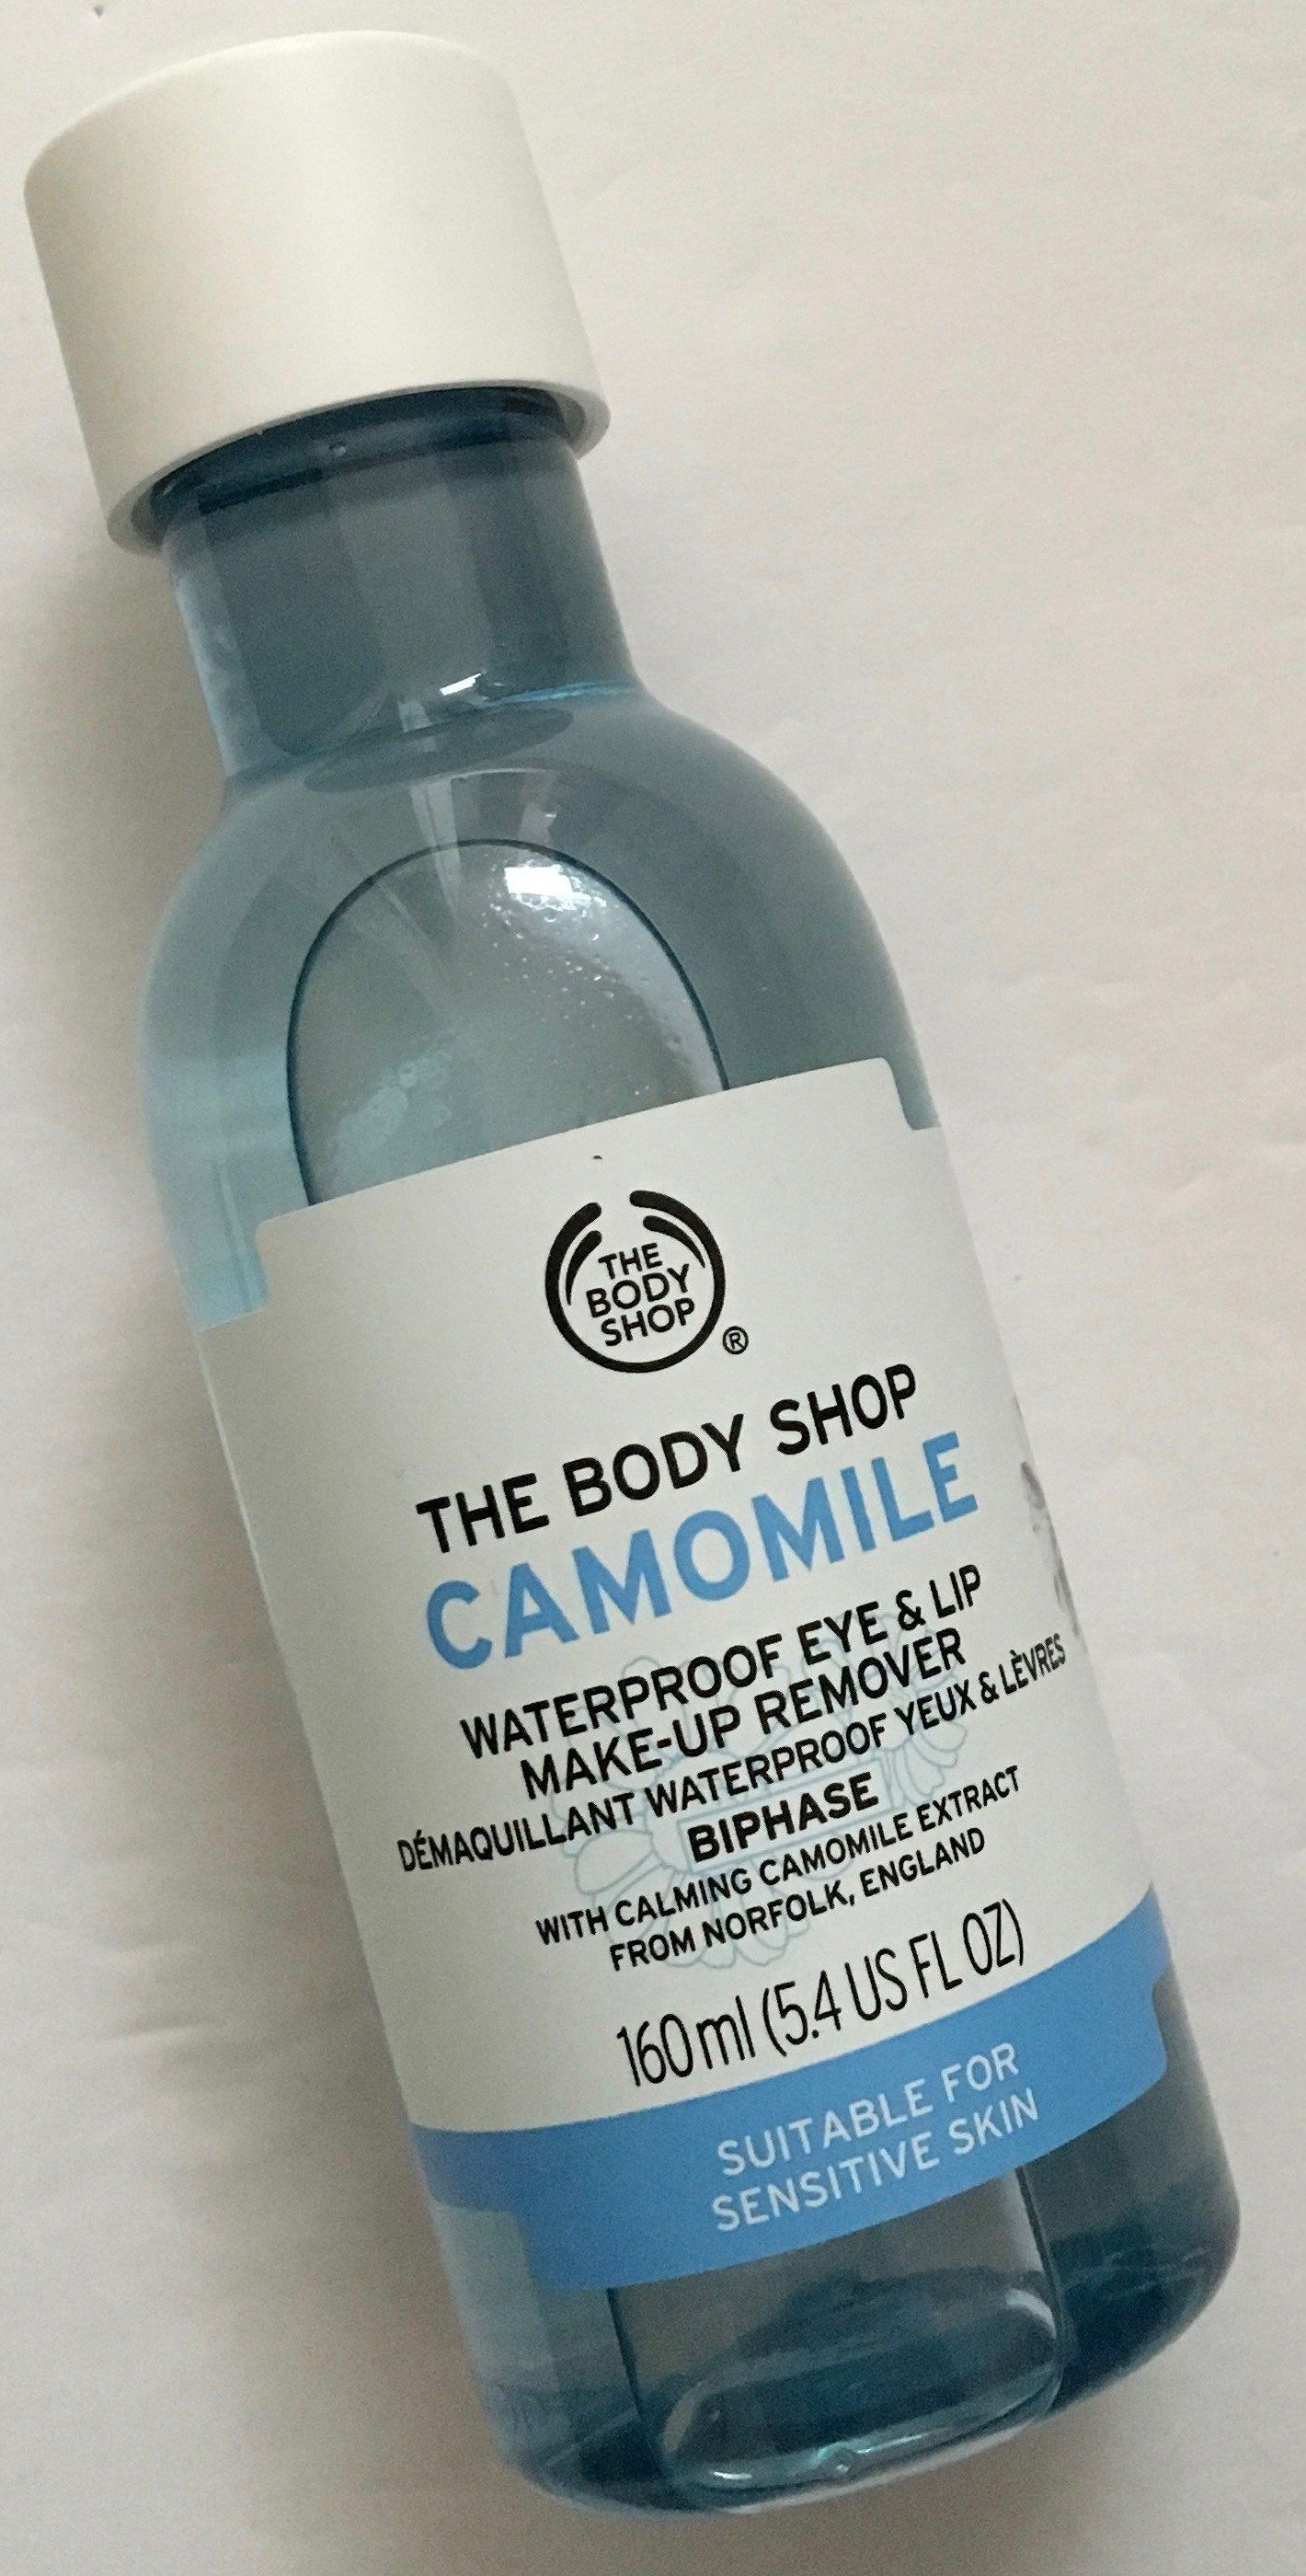 The Body Shop Camomile Waterproof Eye and Lip Makeup